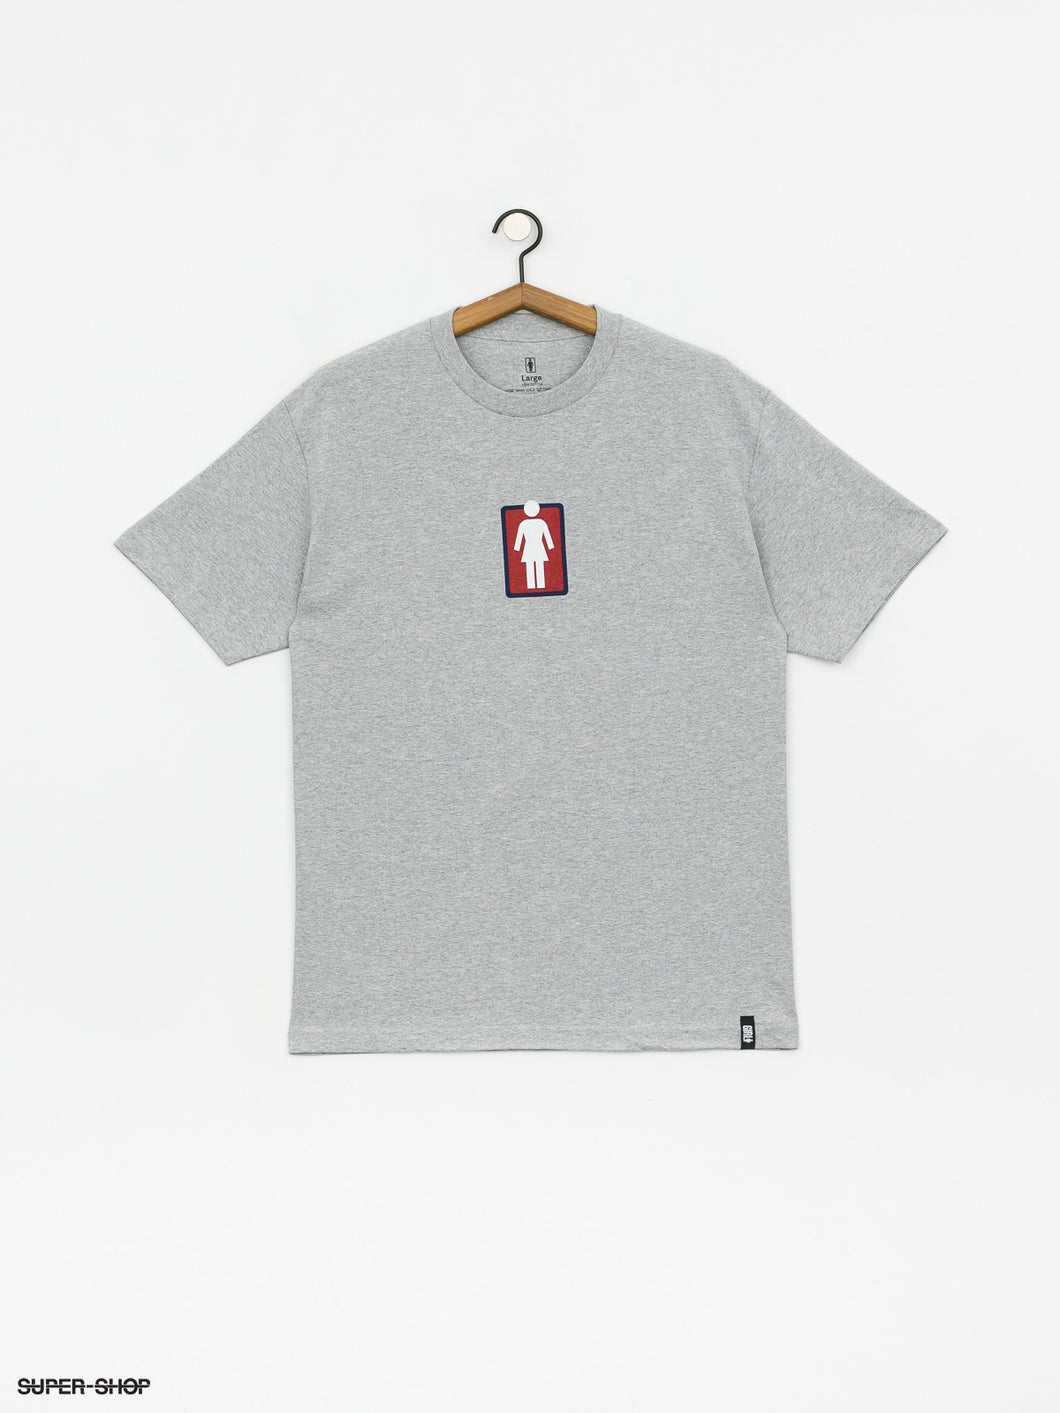 GIRL SKATEBOARDS OG SKATE GRAY SHIRT